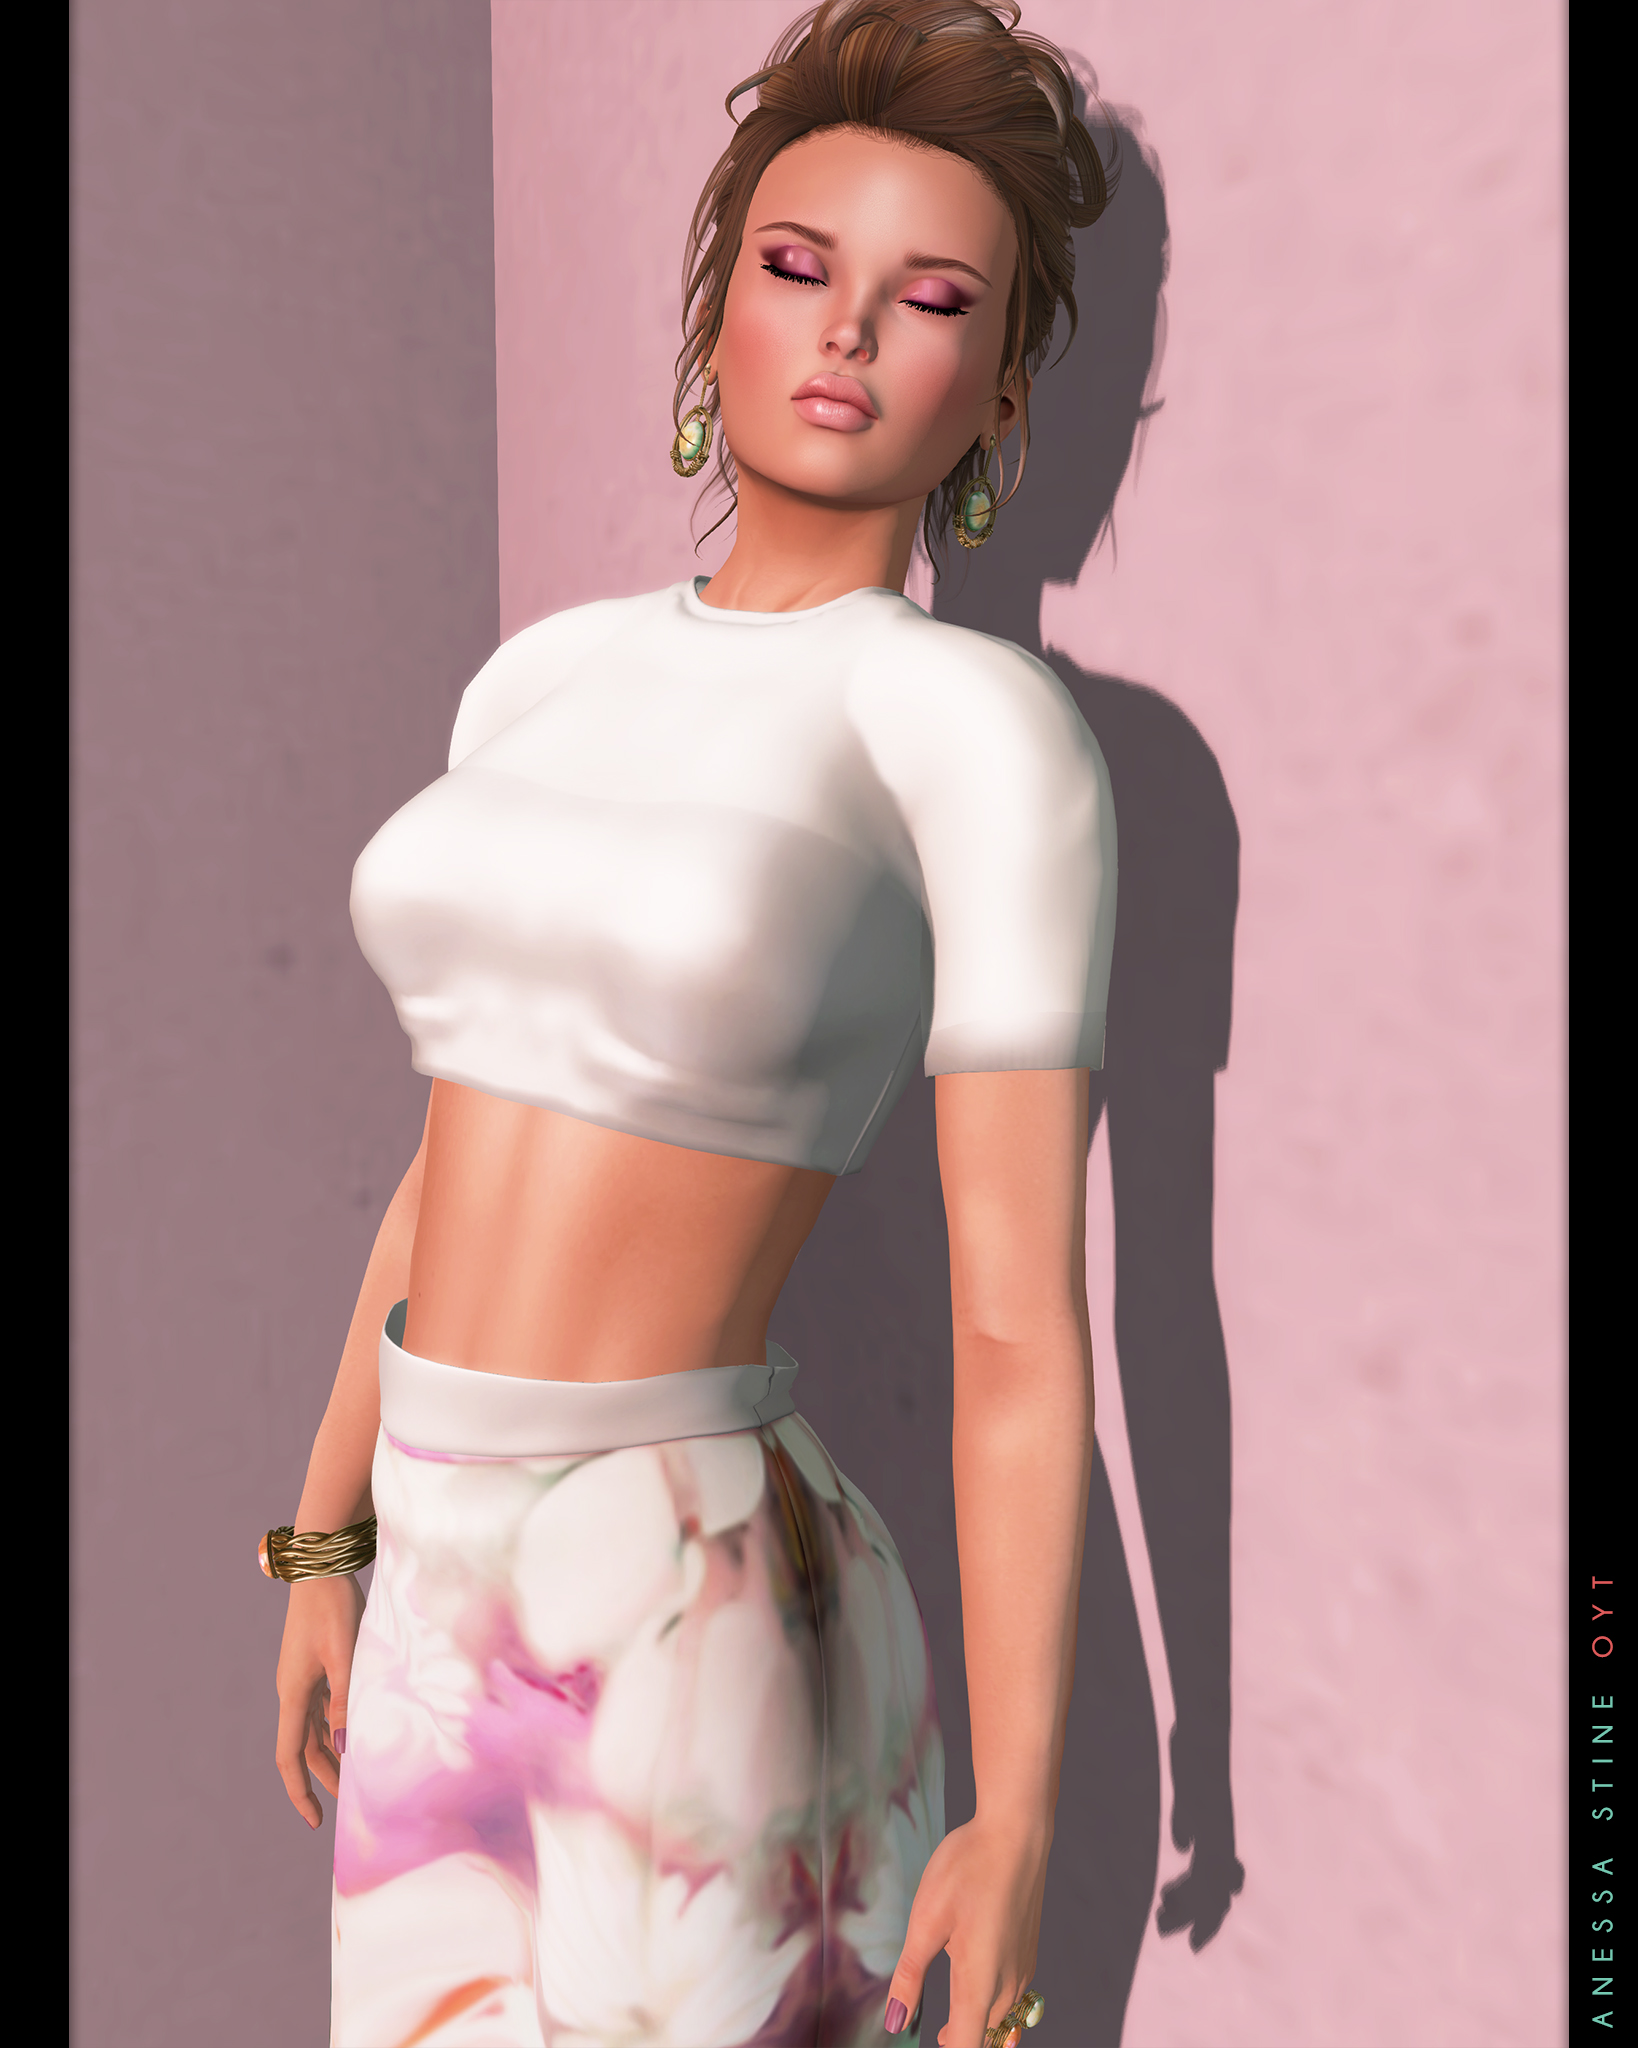 On Youe Toes Blog: Sweet Lotte